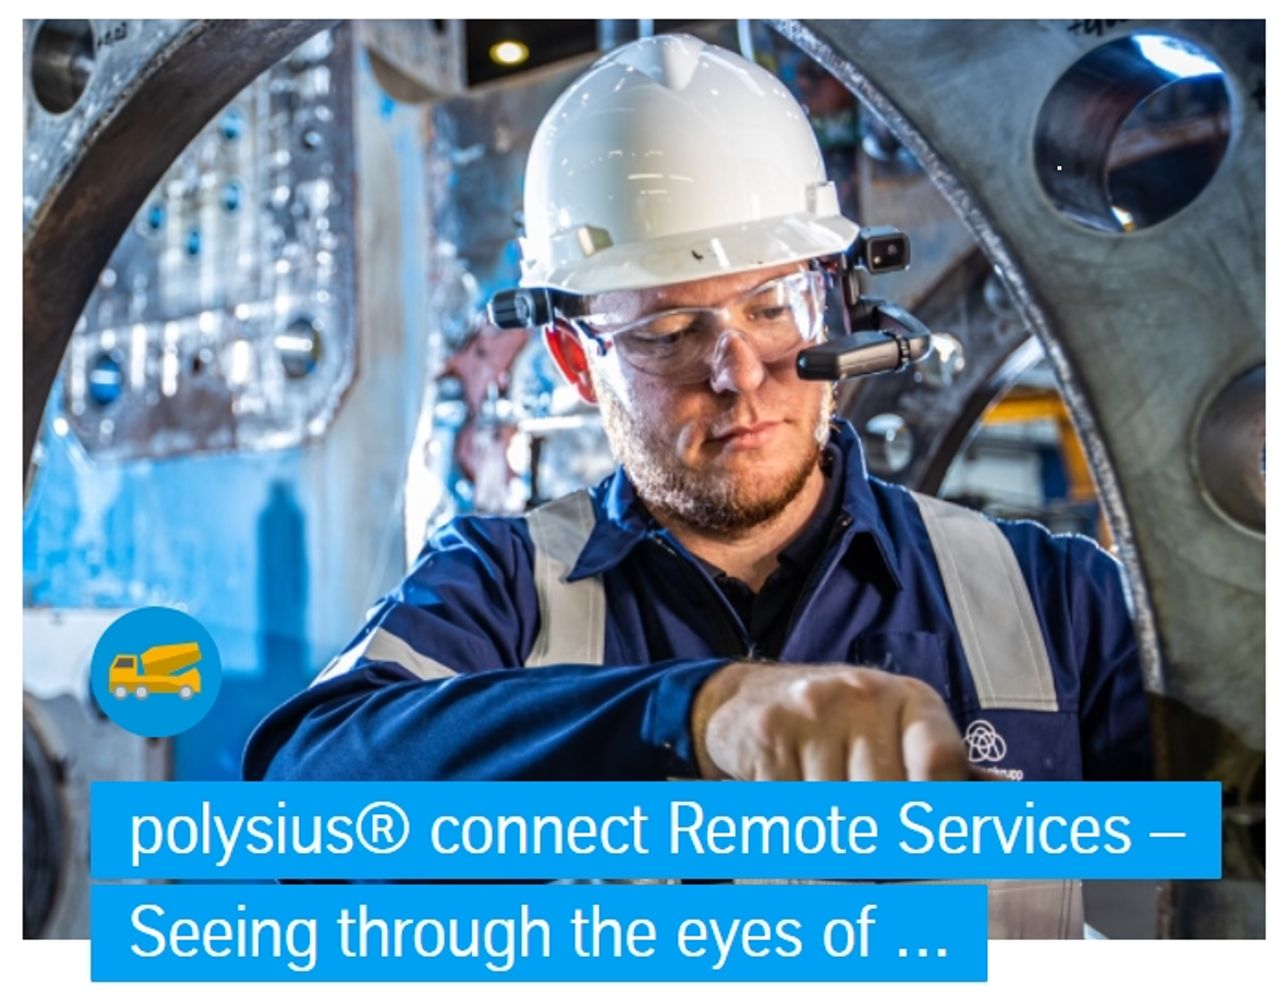 polysius® connect Remote Services – Seeing through the eyes of our experts via data glasses